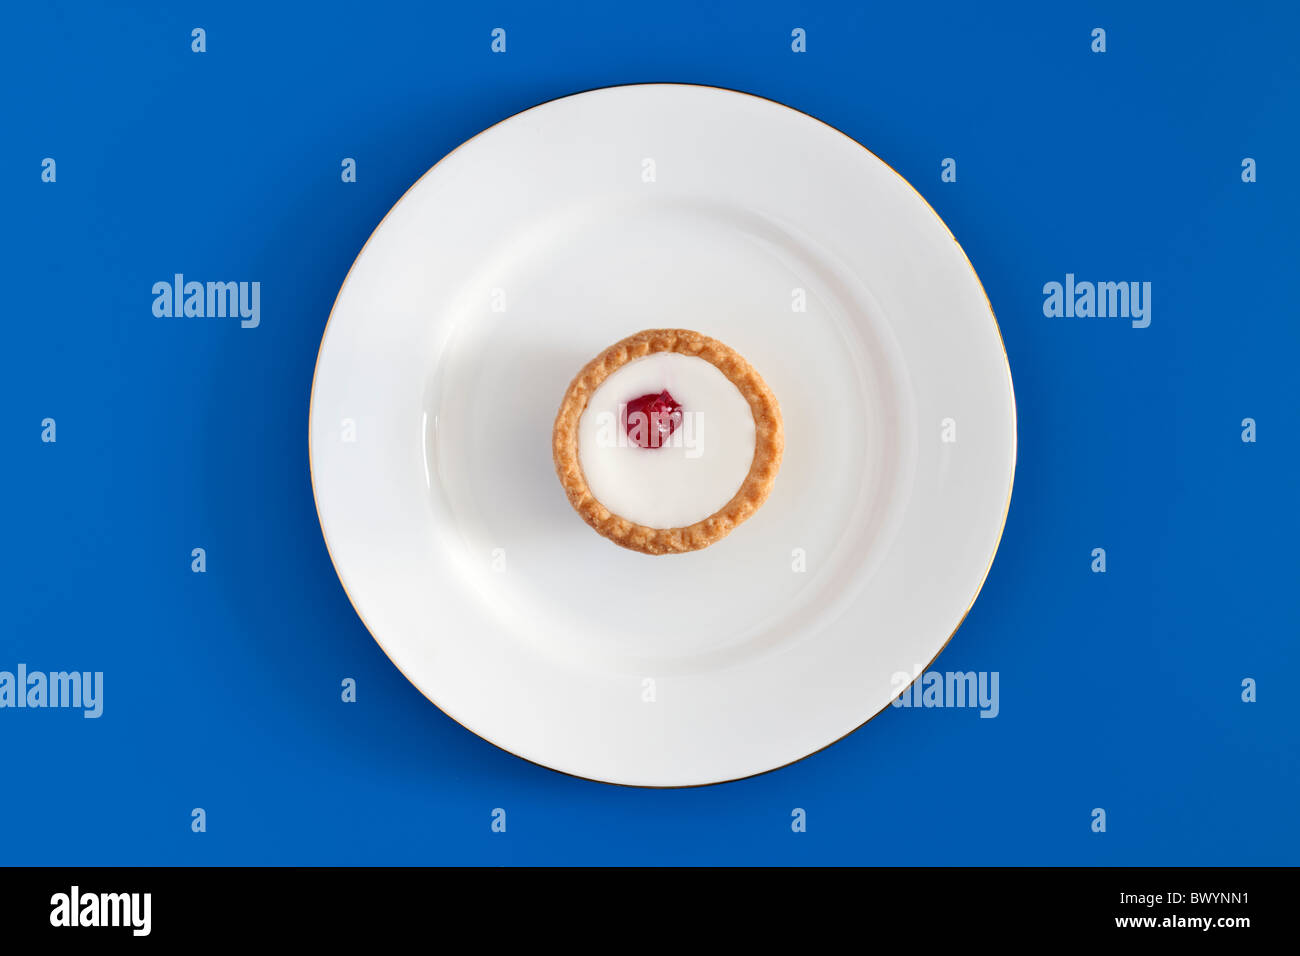 Solitary bakewell bun on a white plate - Stock Image